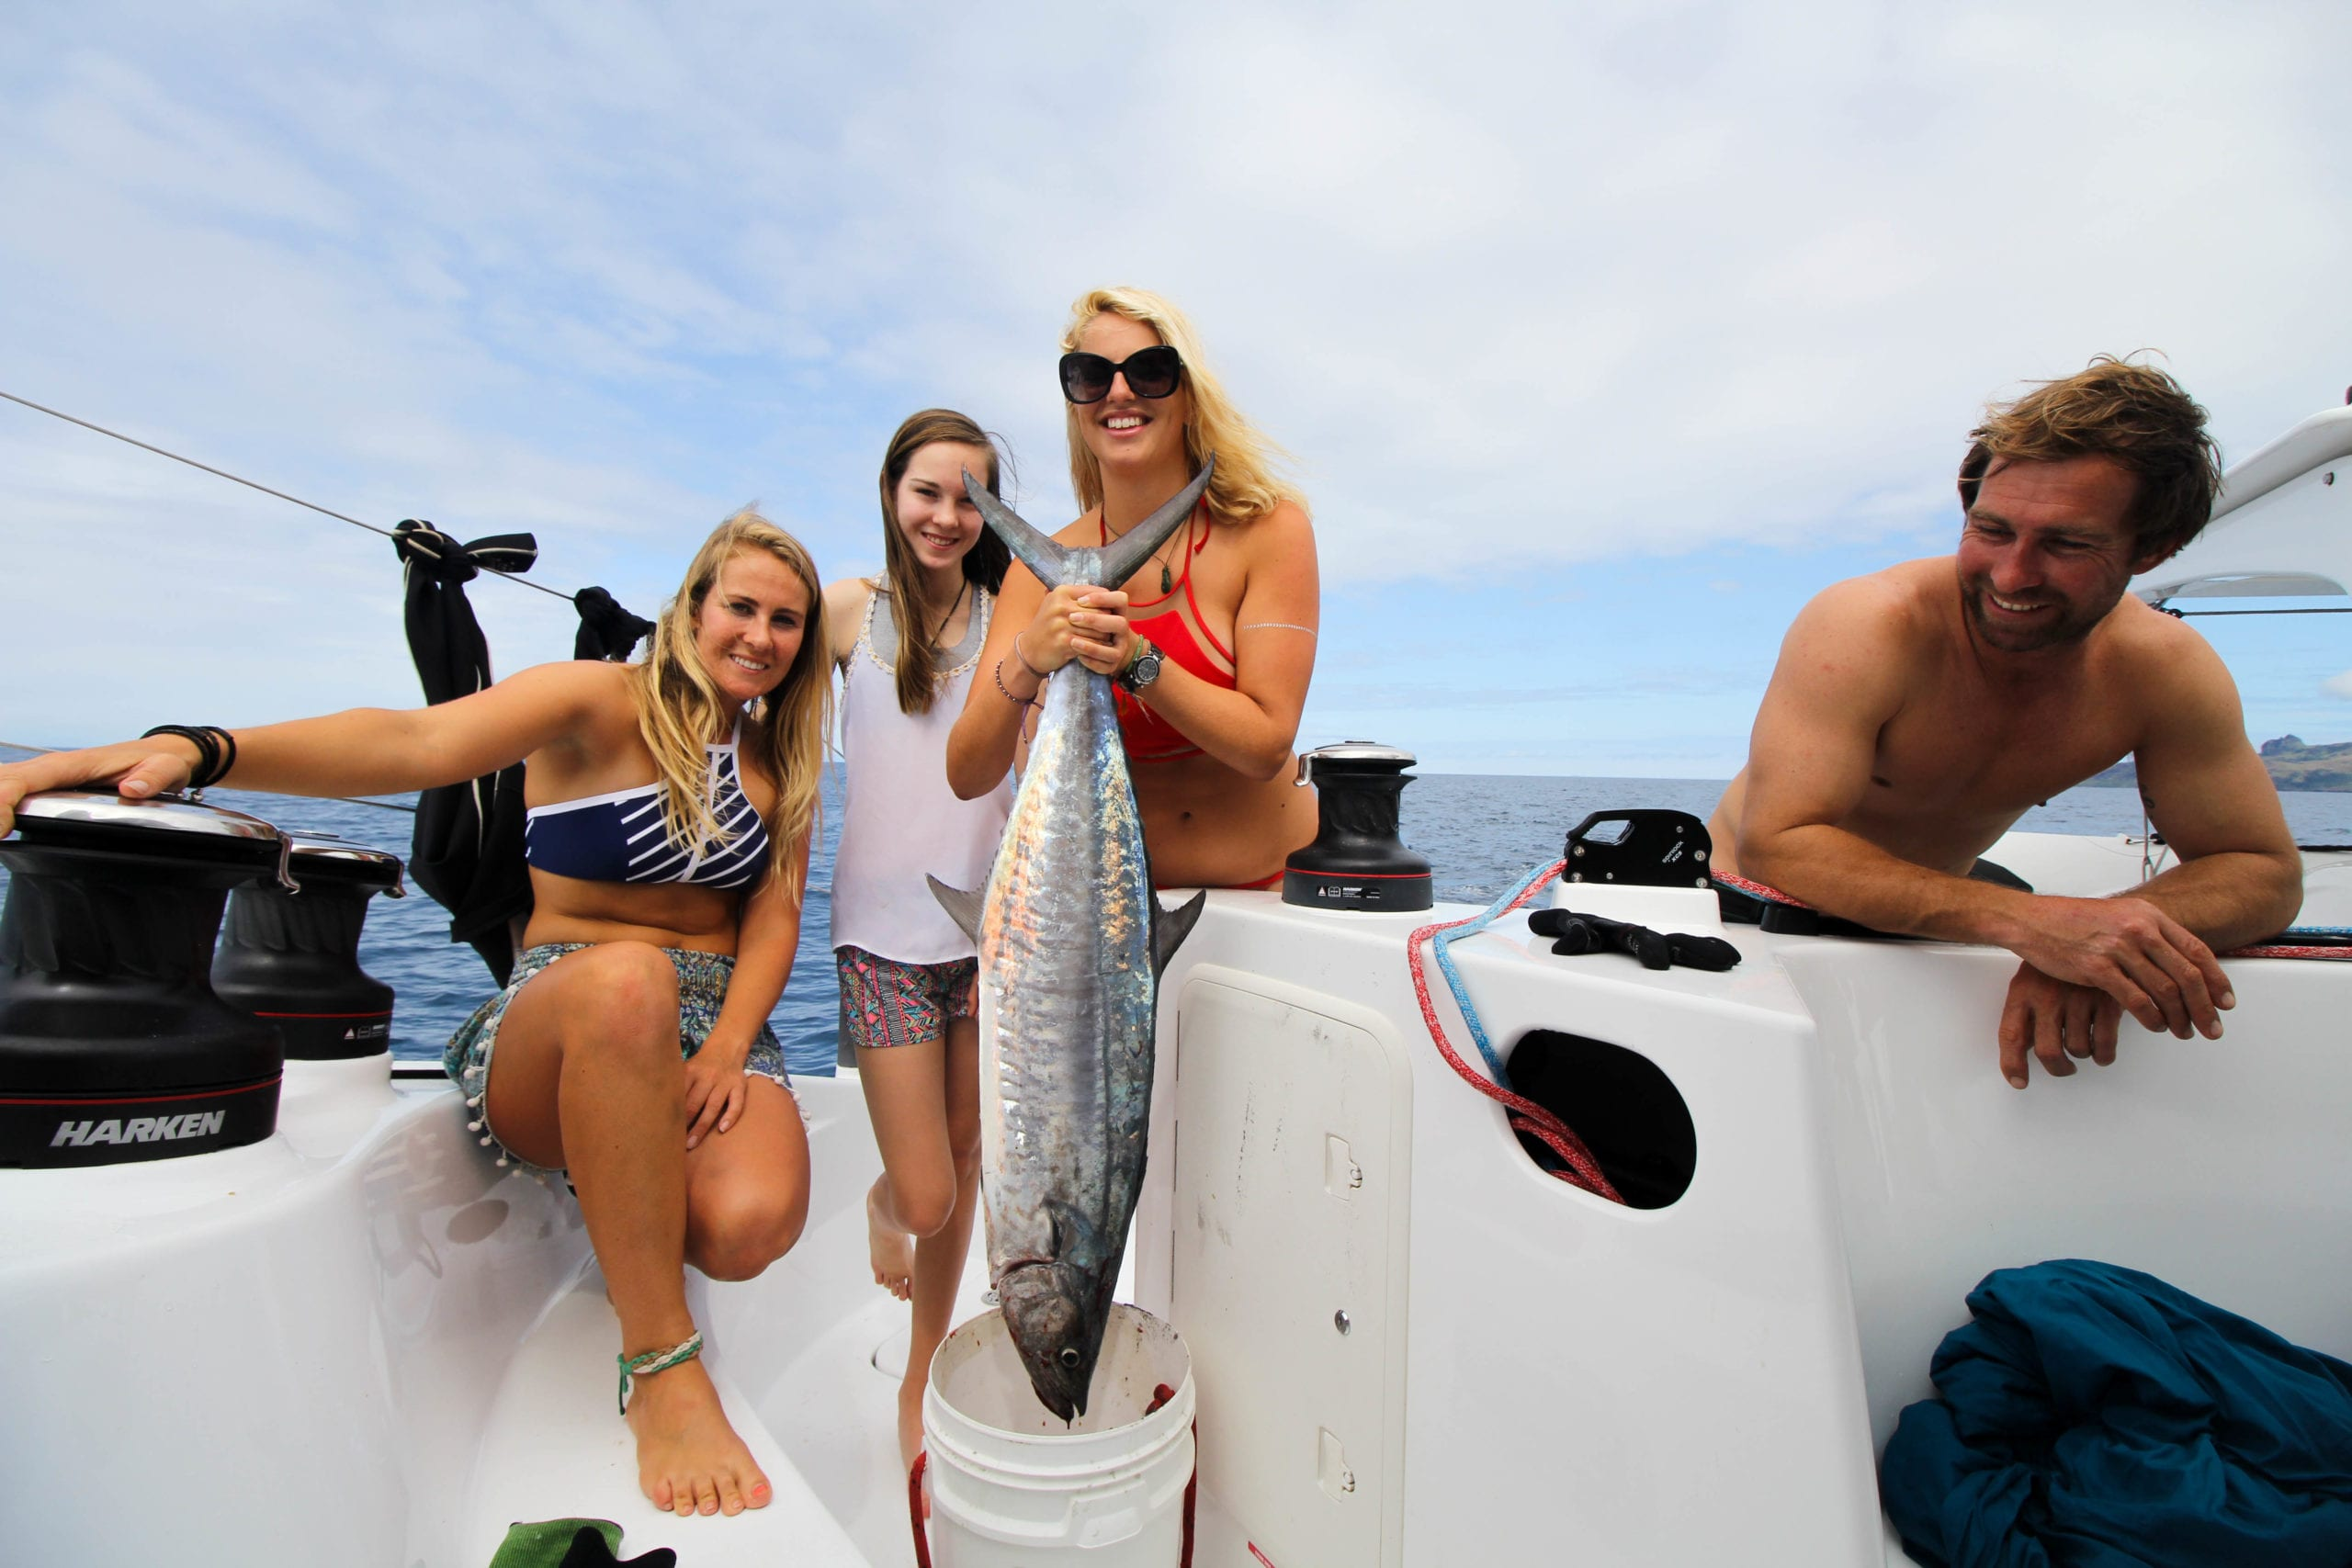 Liss, Lara (Liss' family), Holly and Kaidan (Liss' family) with the catch of the day.